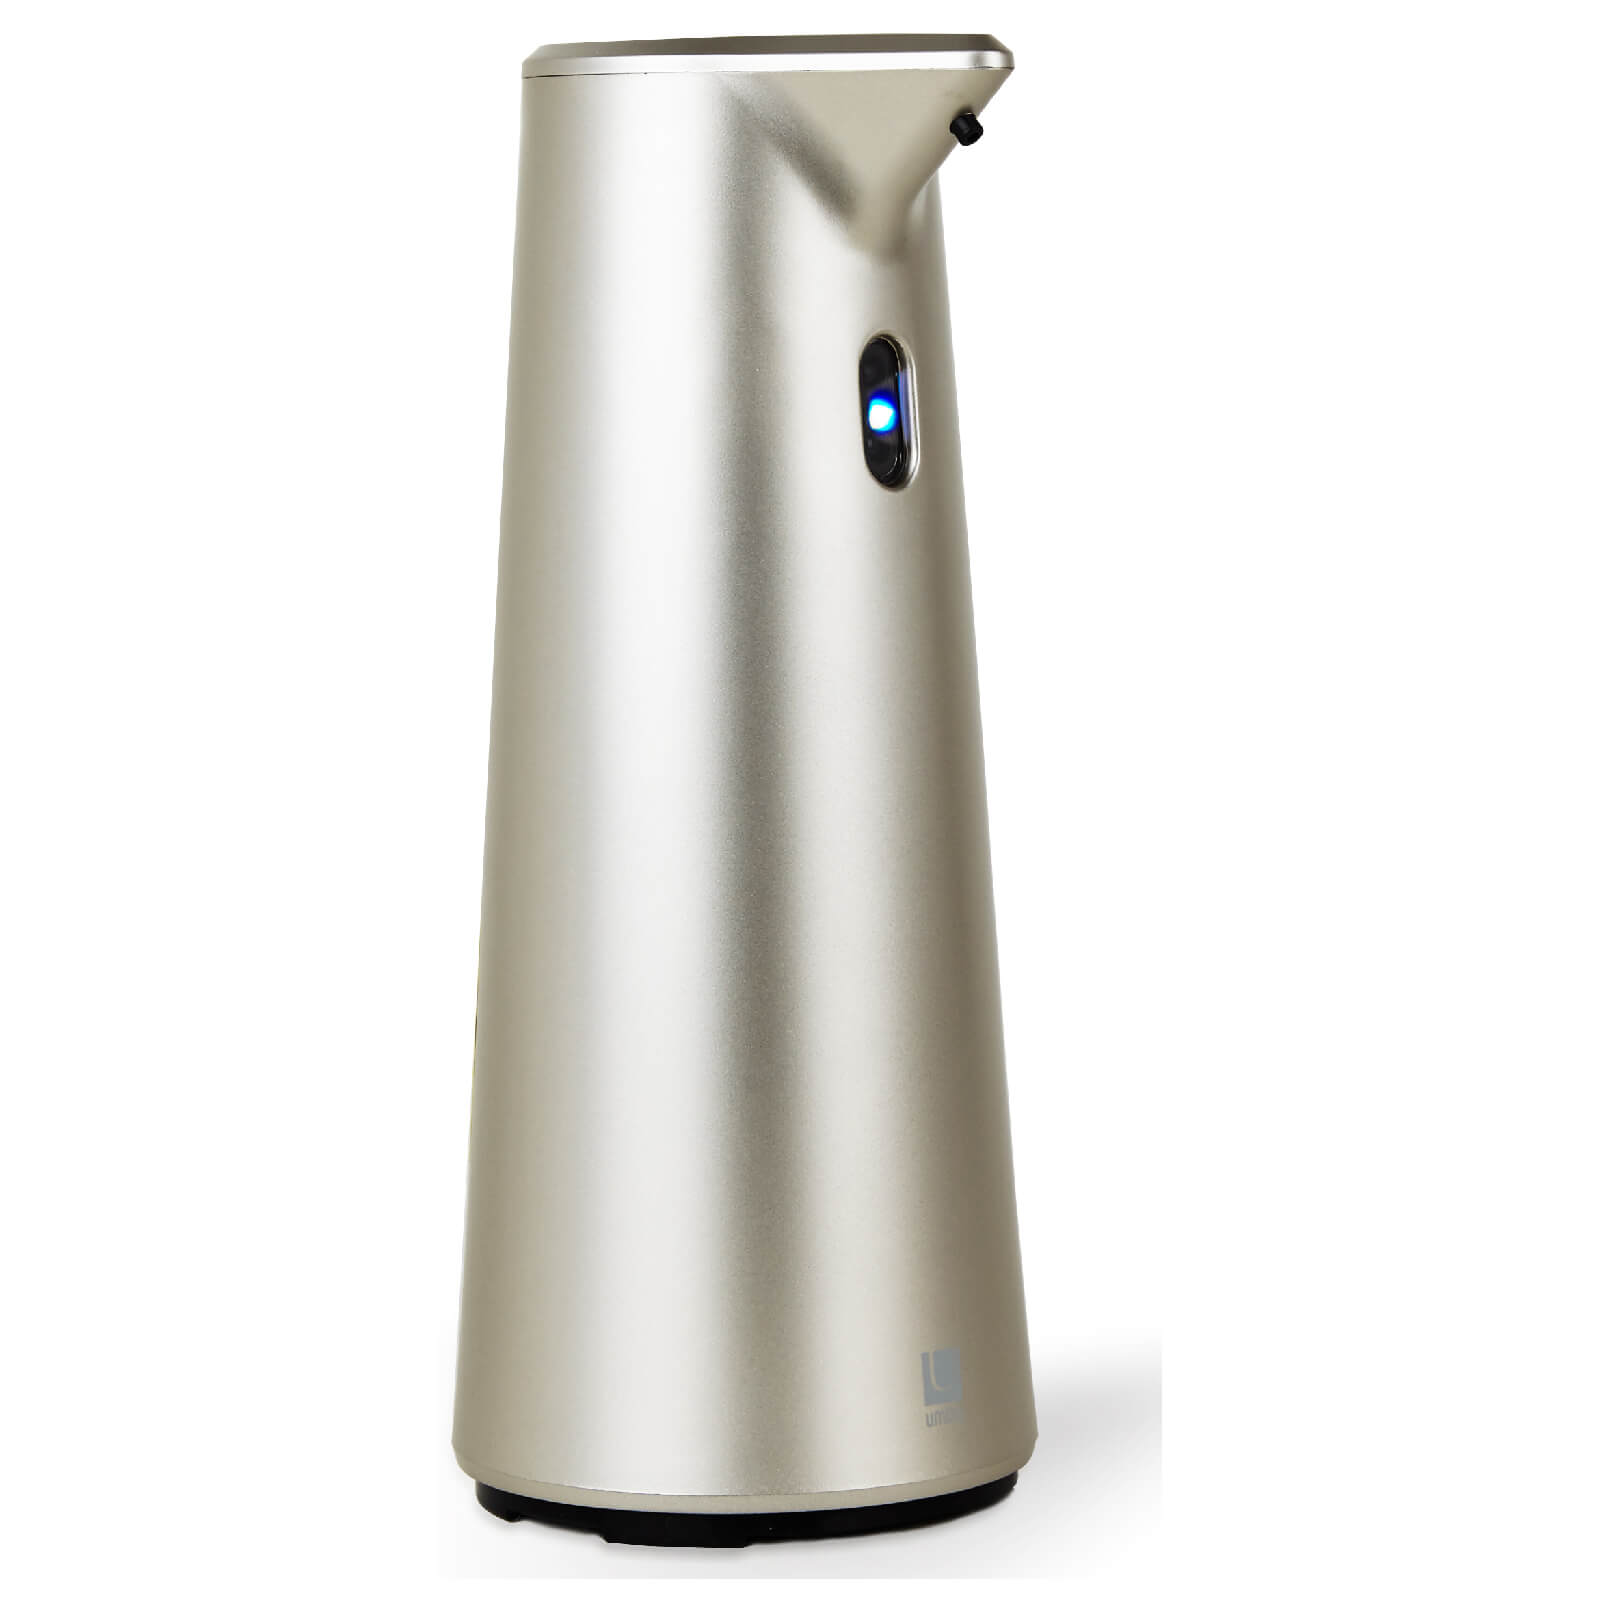 Umbra Finch Sensor Pump Soap Dispenser- Nickel